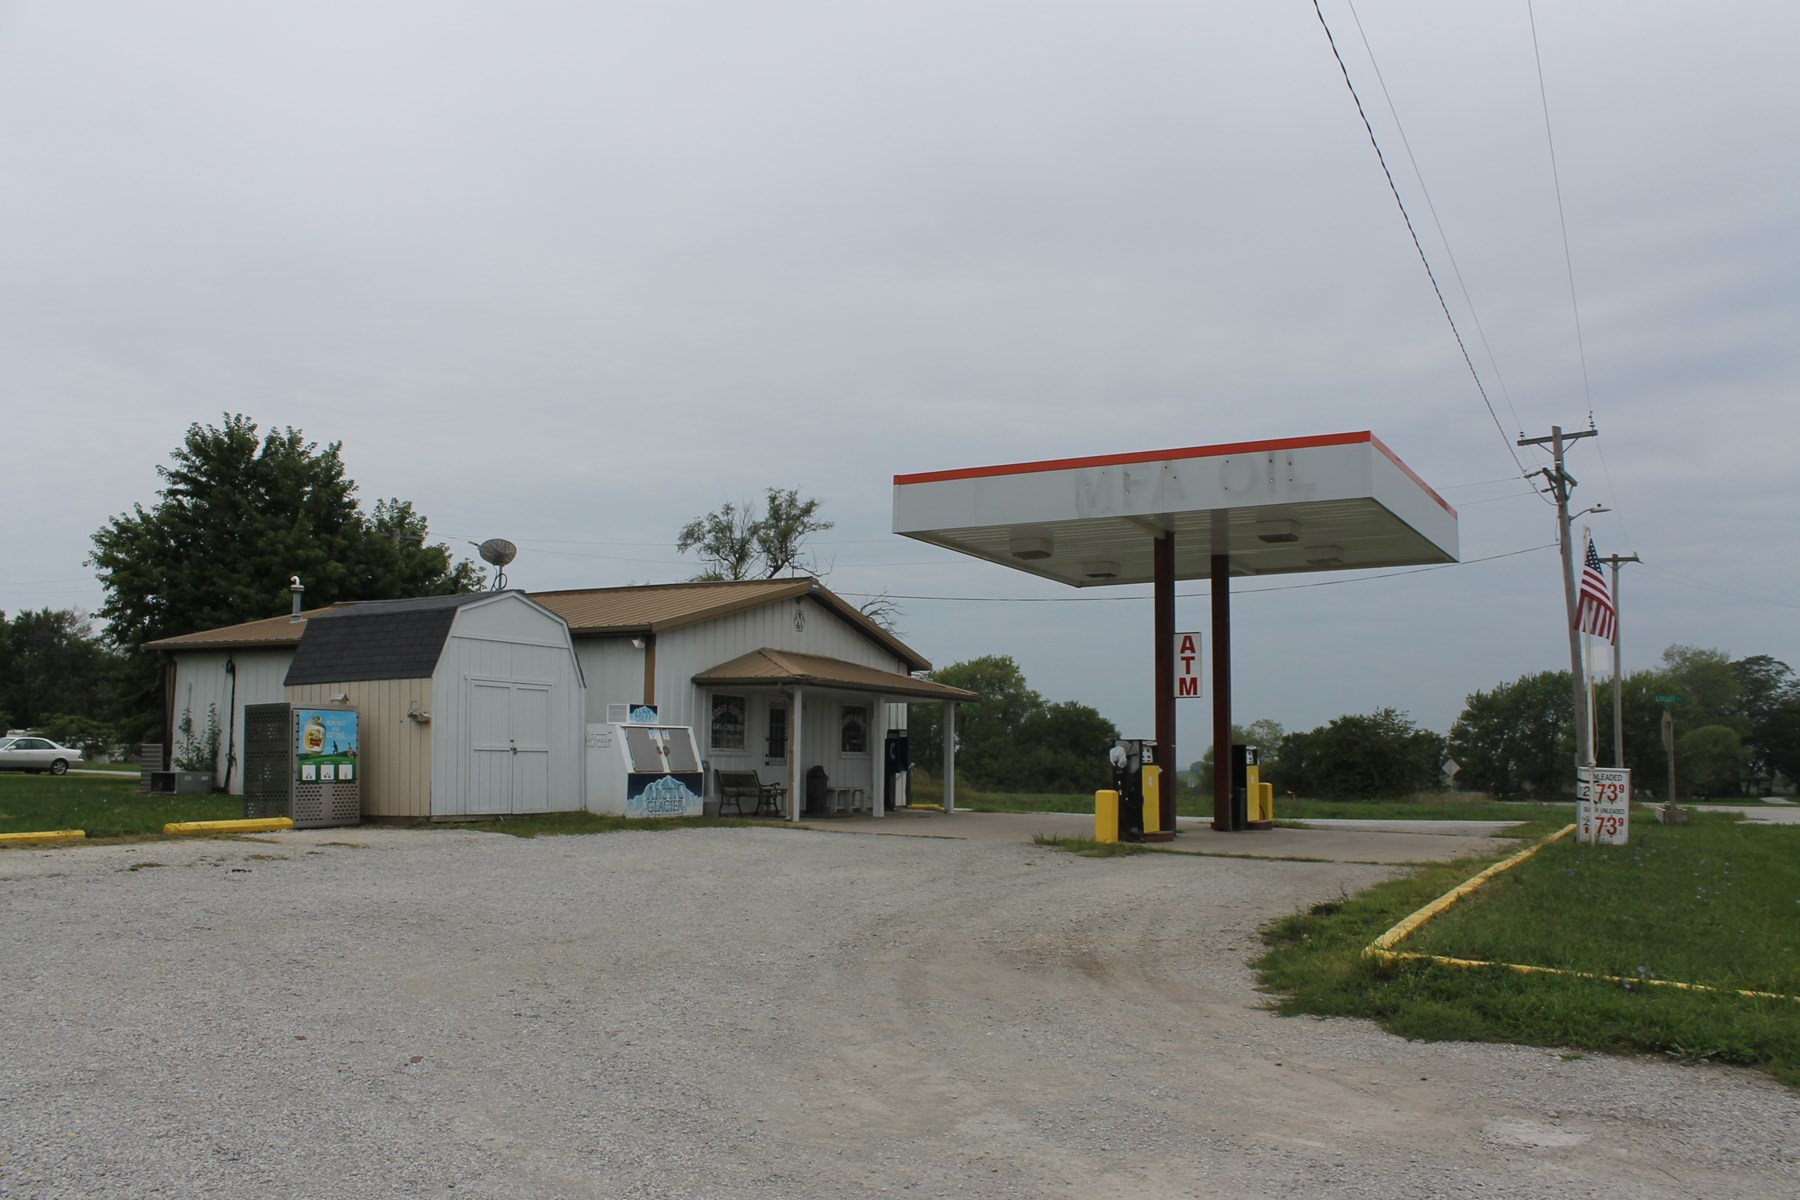 C-STORE FOR SALE IN KIDDER MO